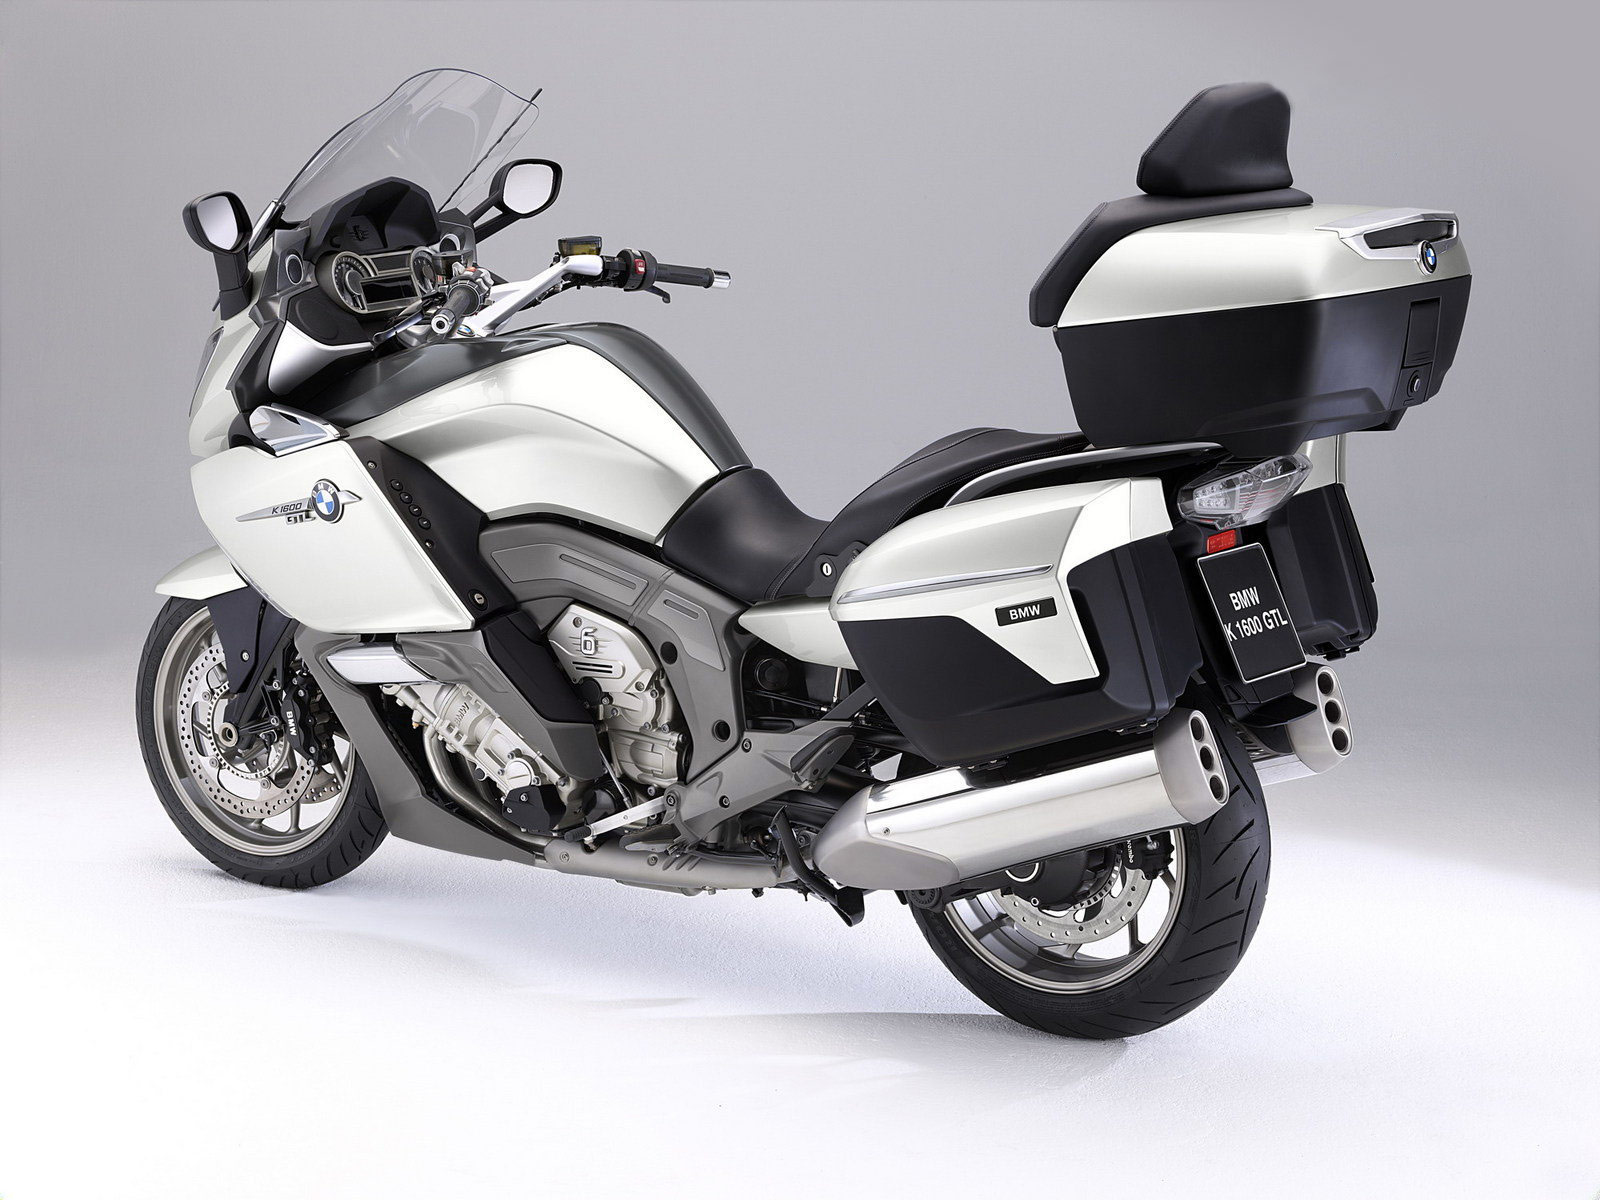 2012 bmw k 1600 gtl wallpapers motorcycle accident lawyers. Black Bedroom Furniture Sets. Home Design Ideas